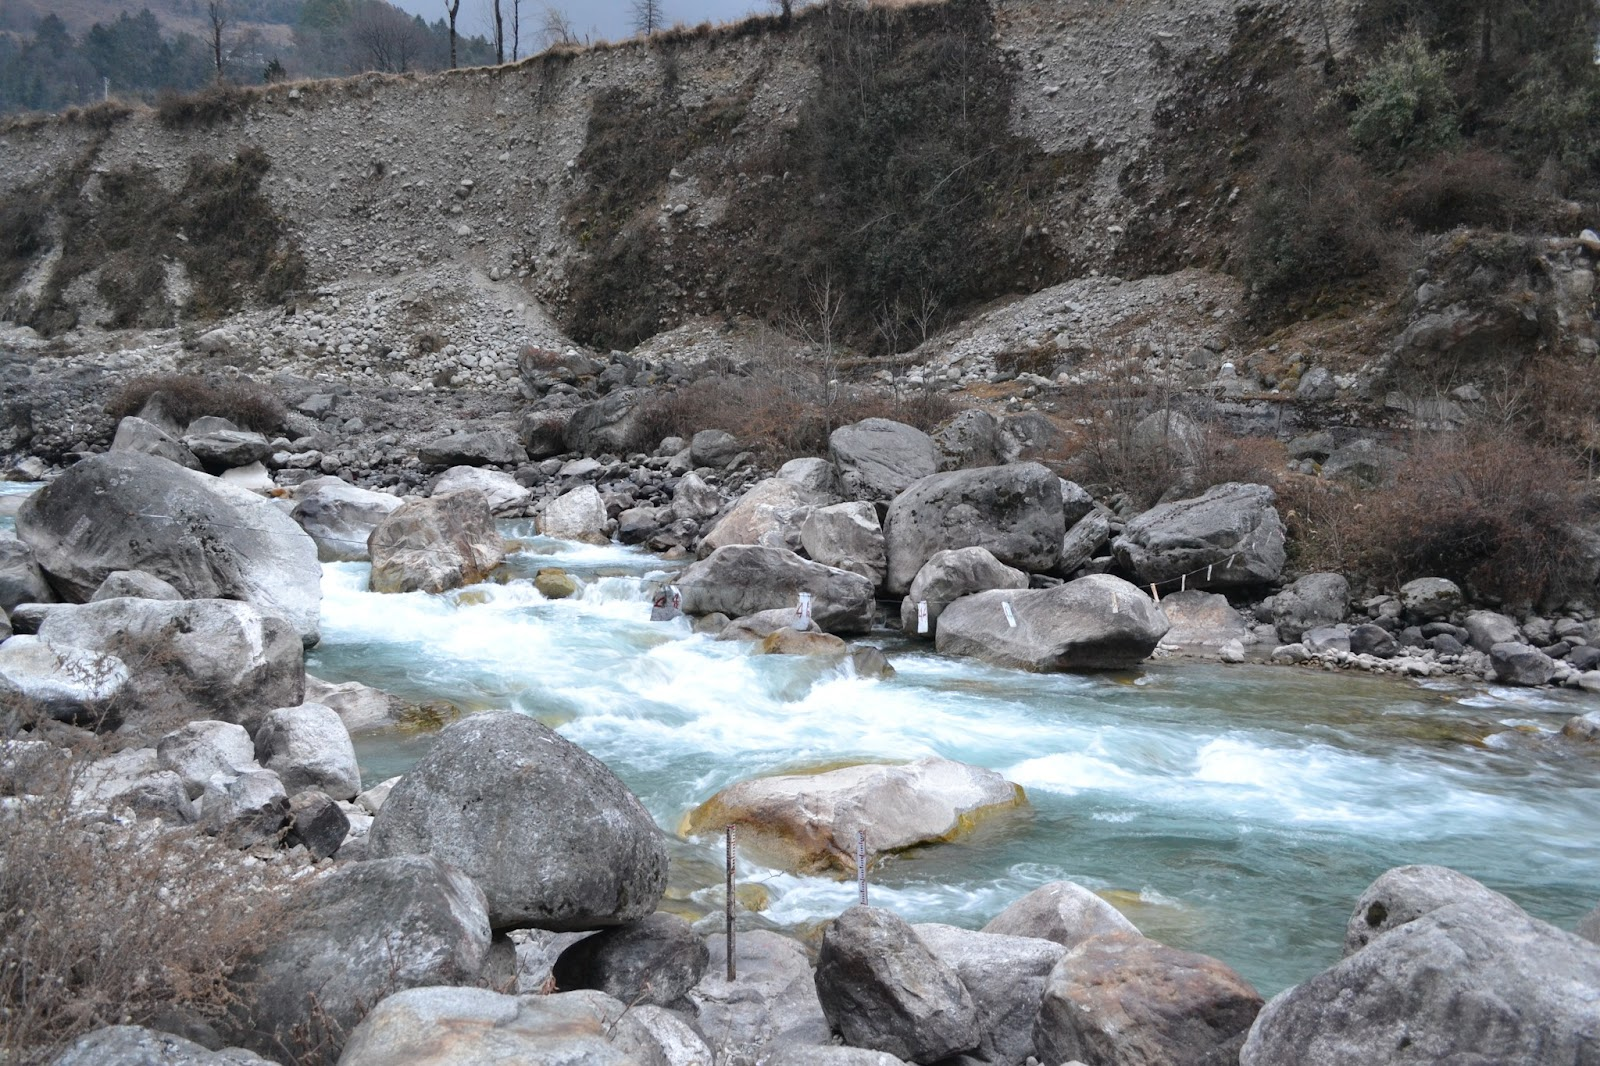 Teesta river at lachung